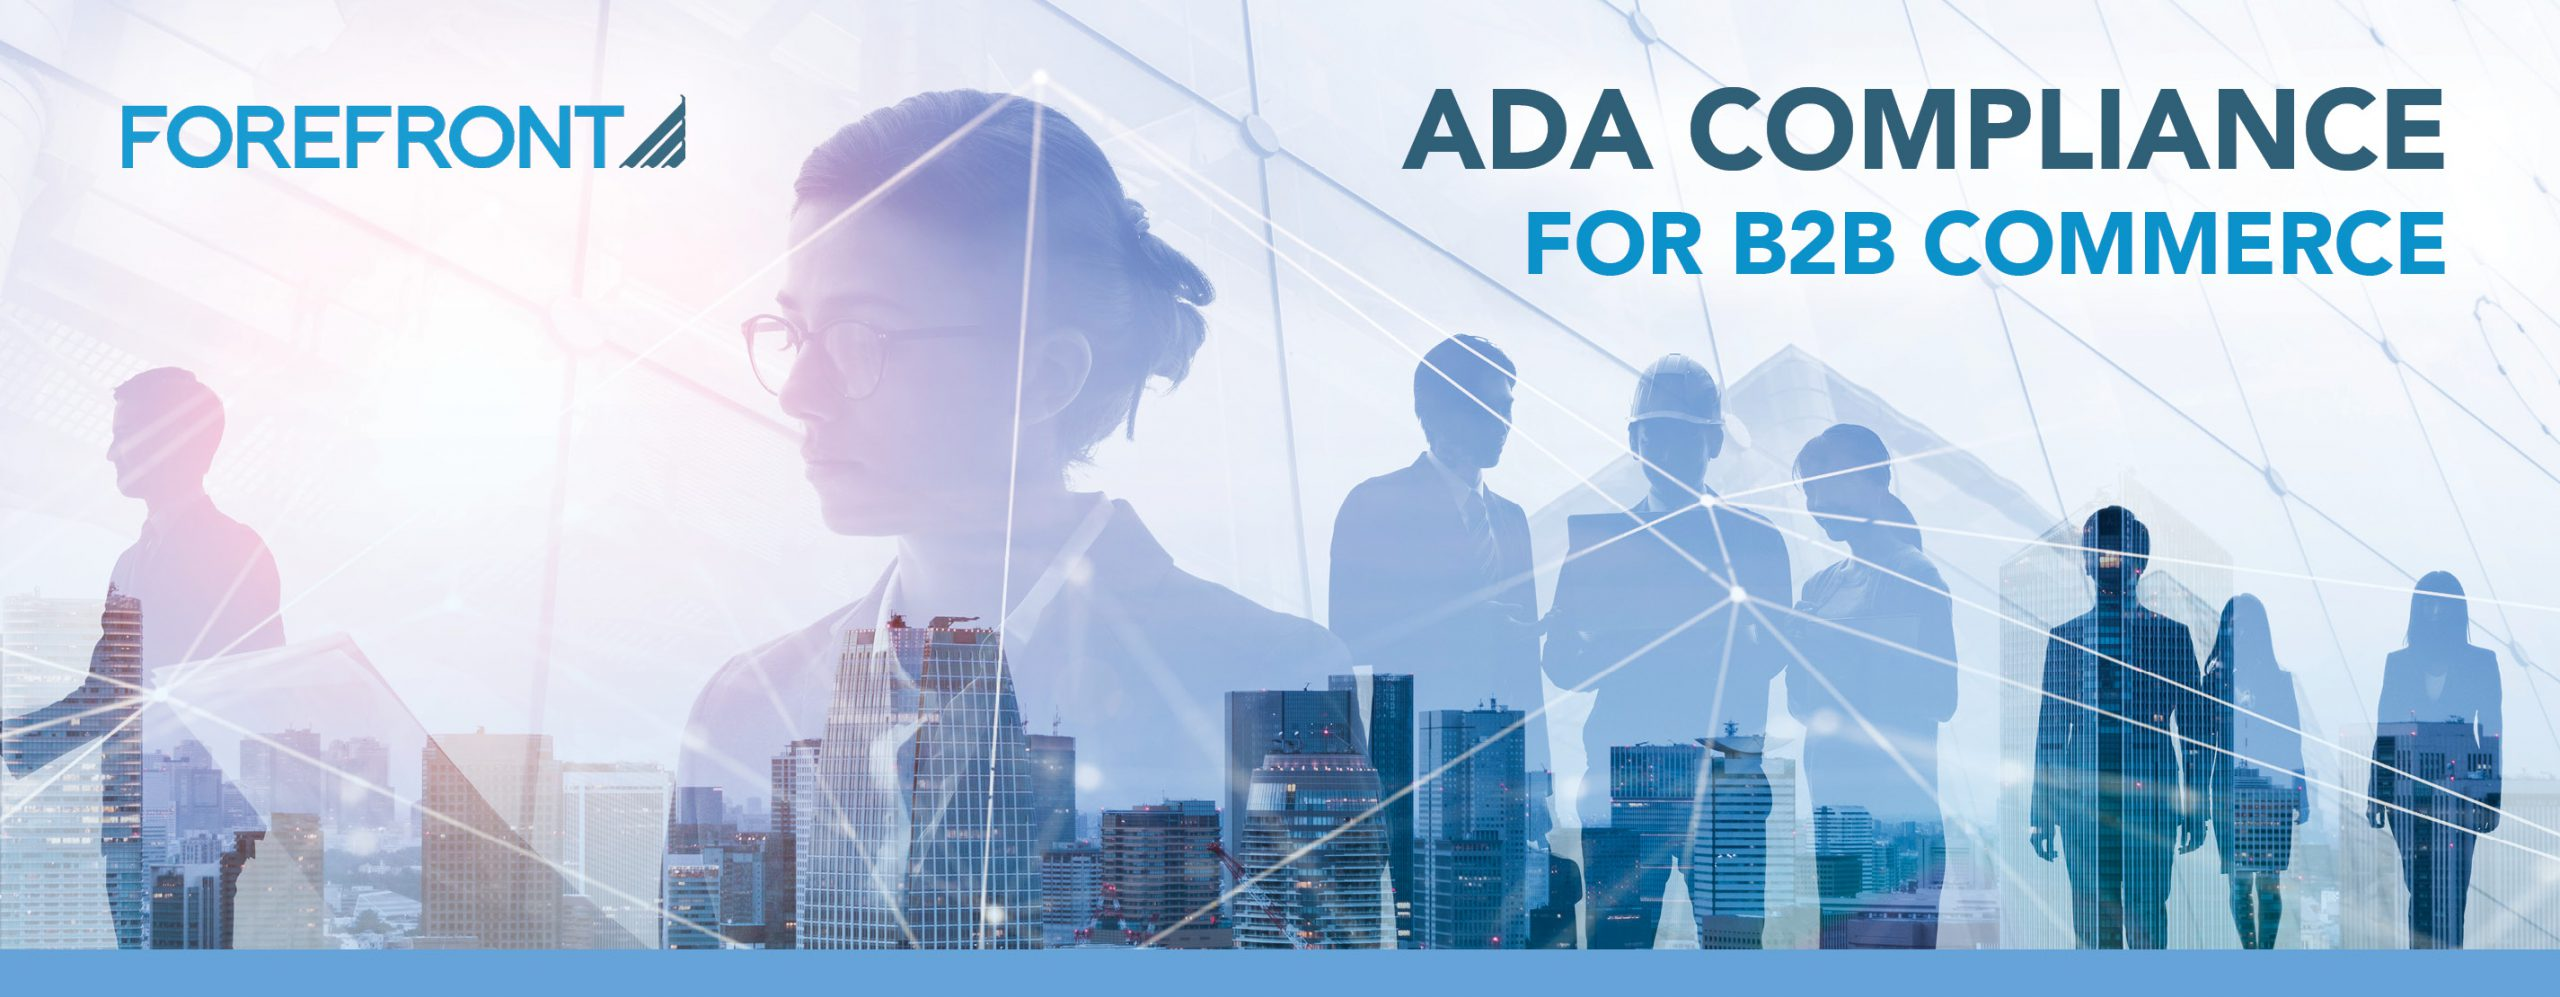 ADA Compliance for B2B Commerce